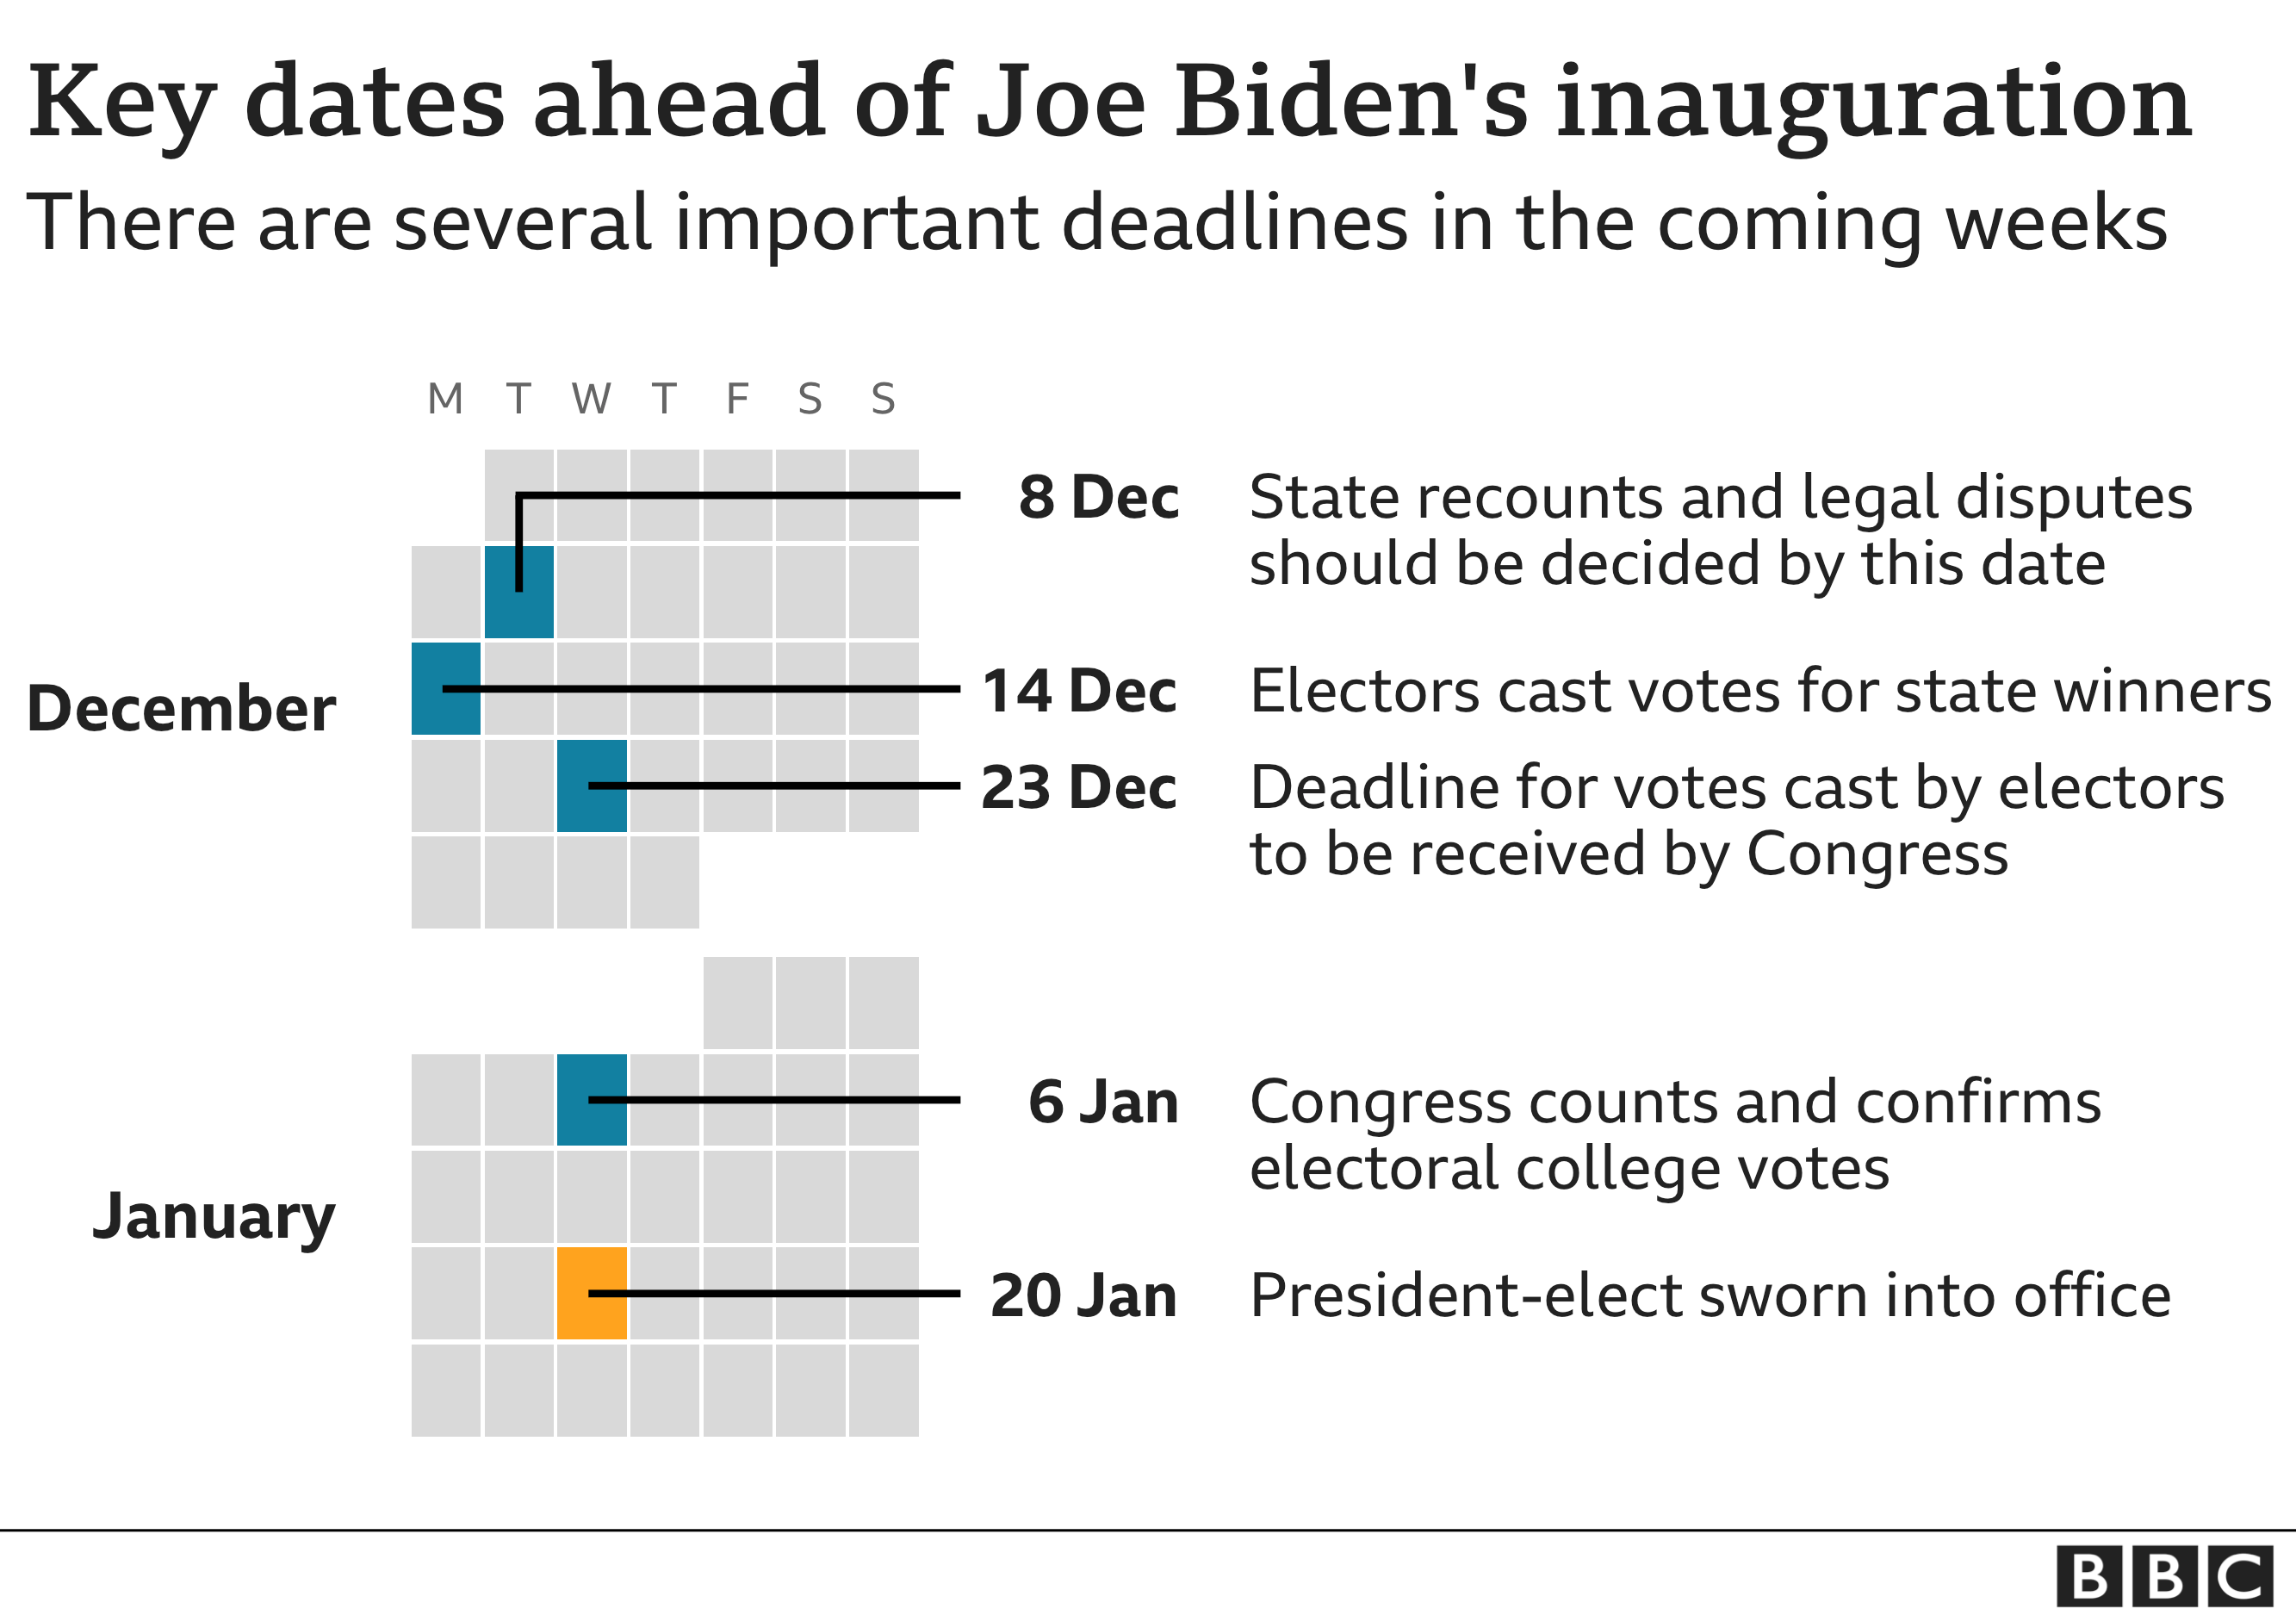 The key dates ahead of Joe Biden's inauguration